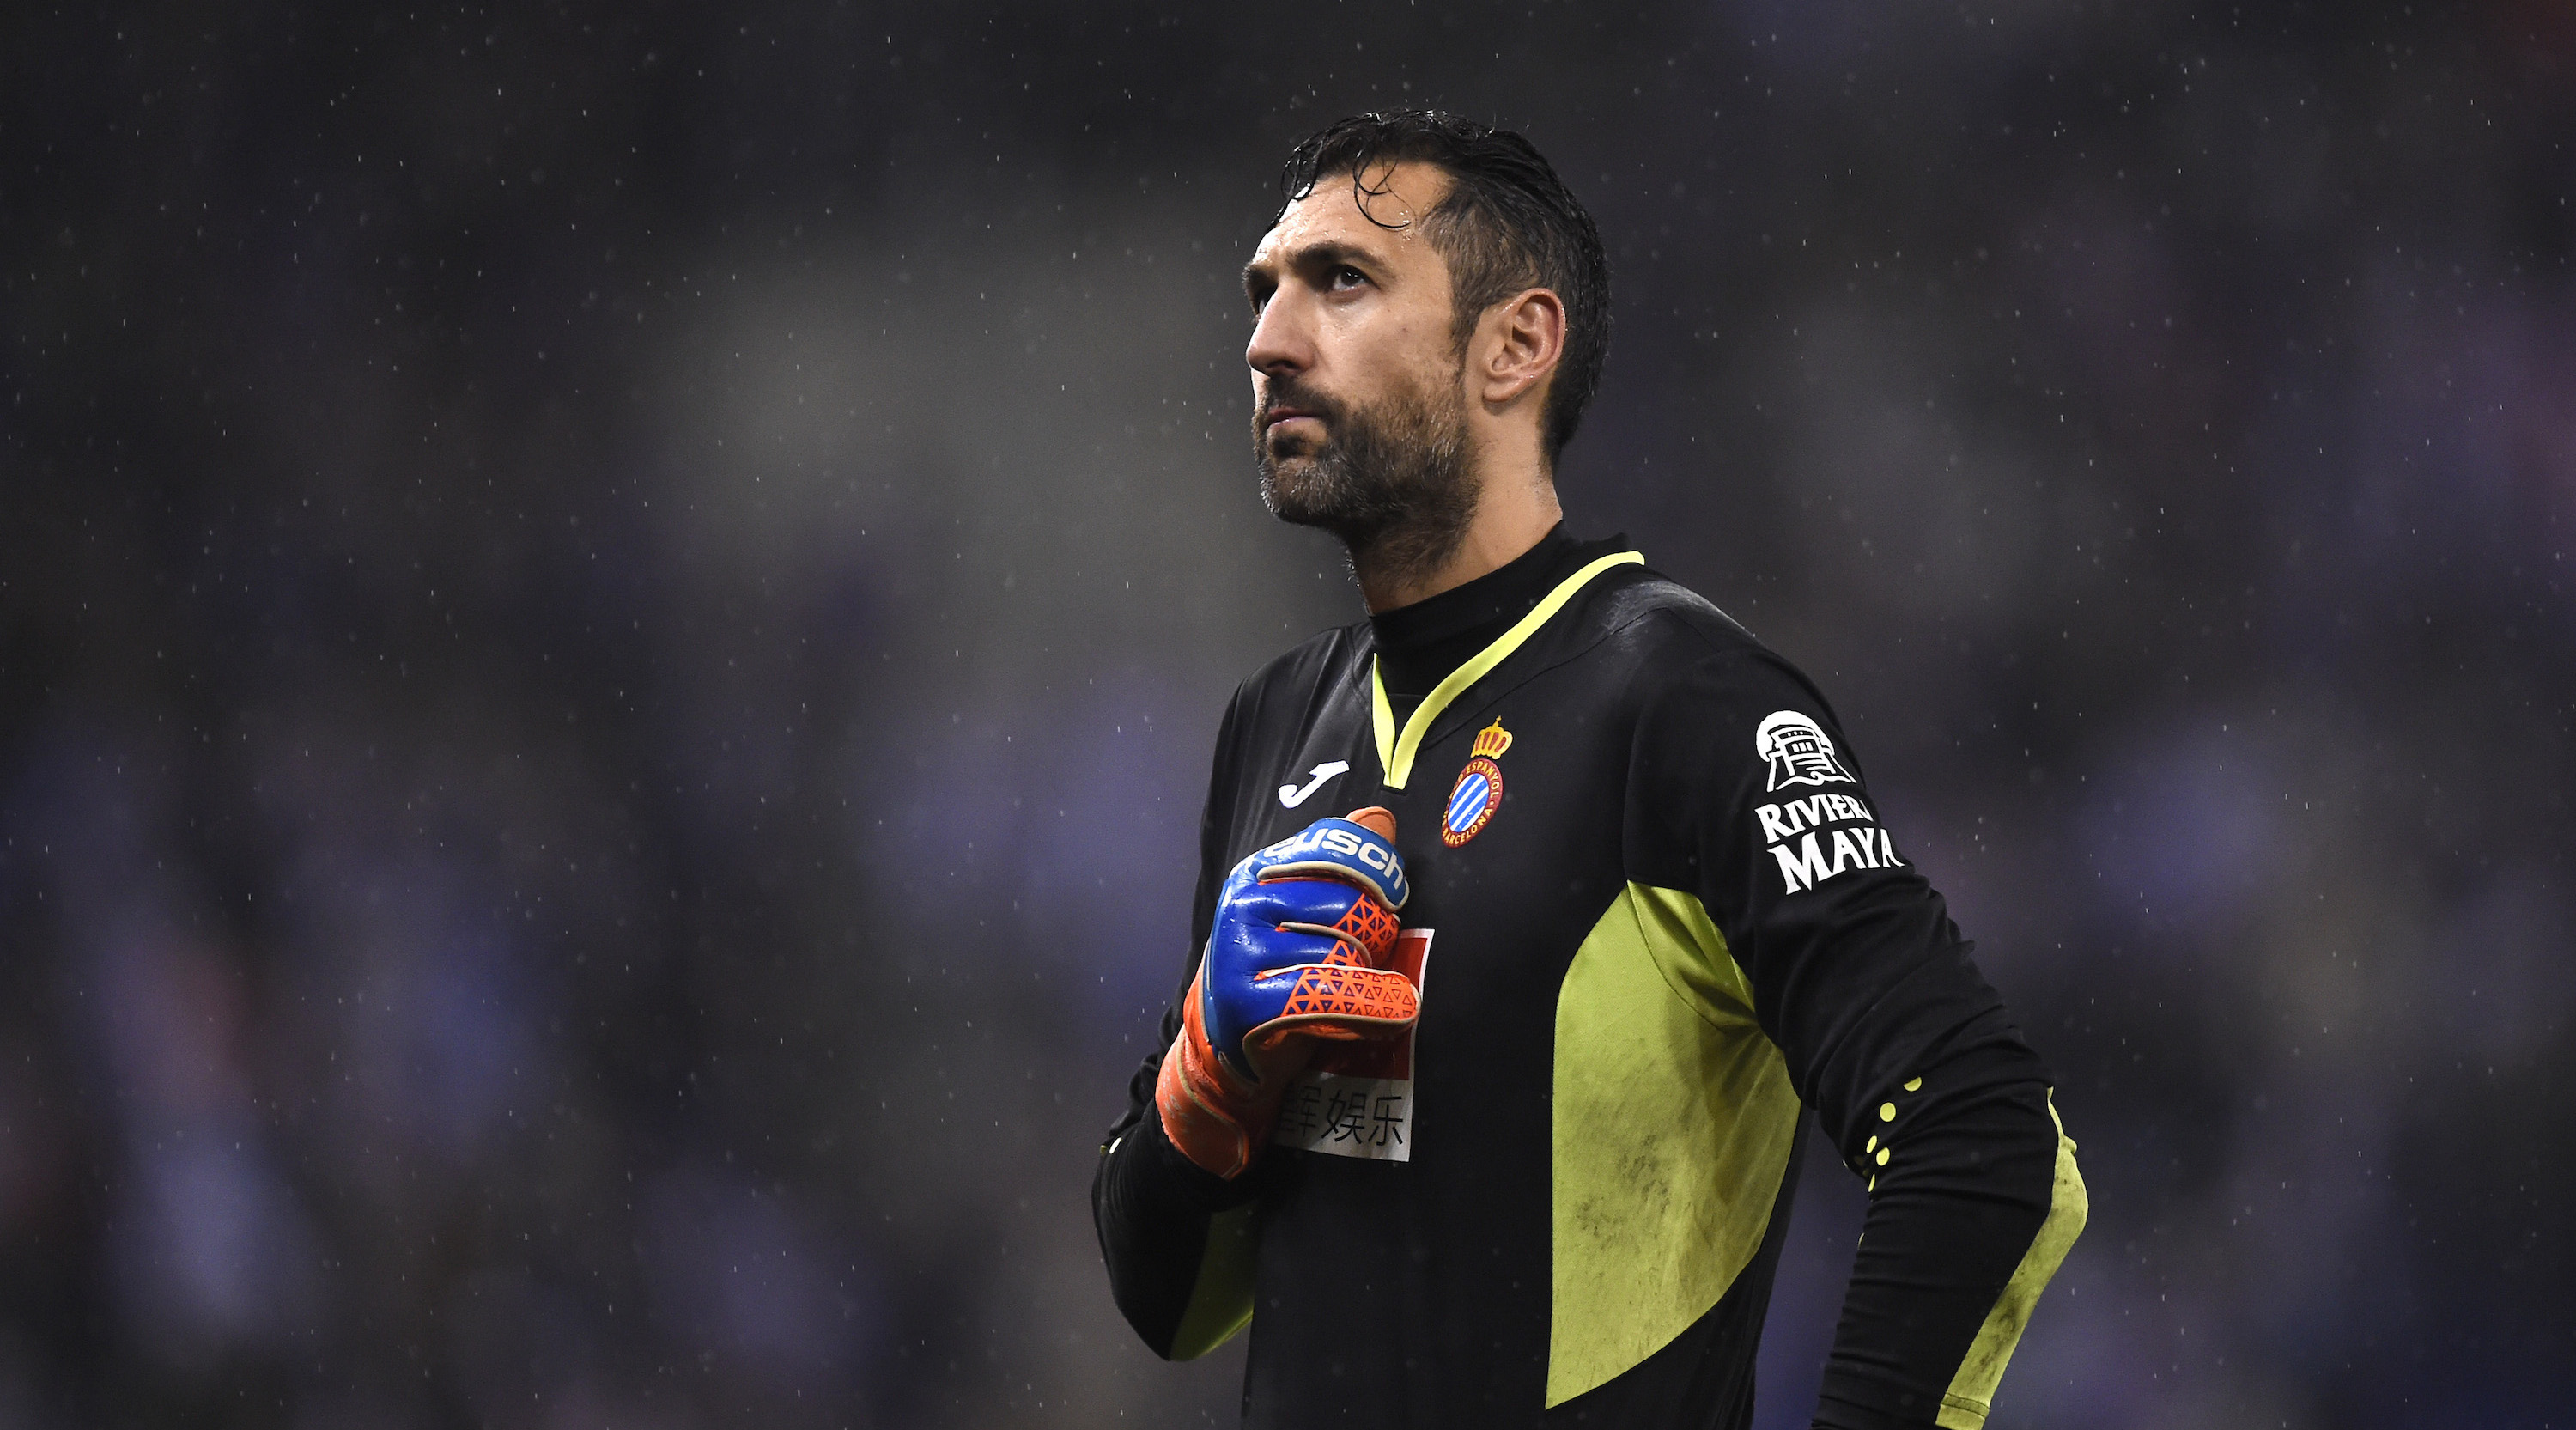 BARCELONA, SPAIN - JANUARY 17: Diego Lopez of Espanyol looks on during the Spanish Copa del Rey Quarter Final First Leg match between Espanyol and Barcelona at Nuevo Estadio de Cornella-El Prat on January 17, 2018 in Barcelona, Spain. (Photo by Alex Caparros/Getty Images)